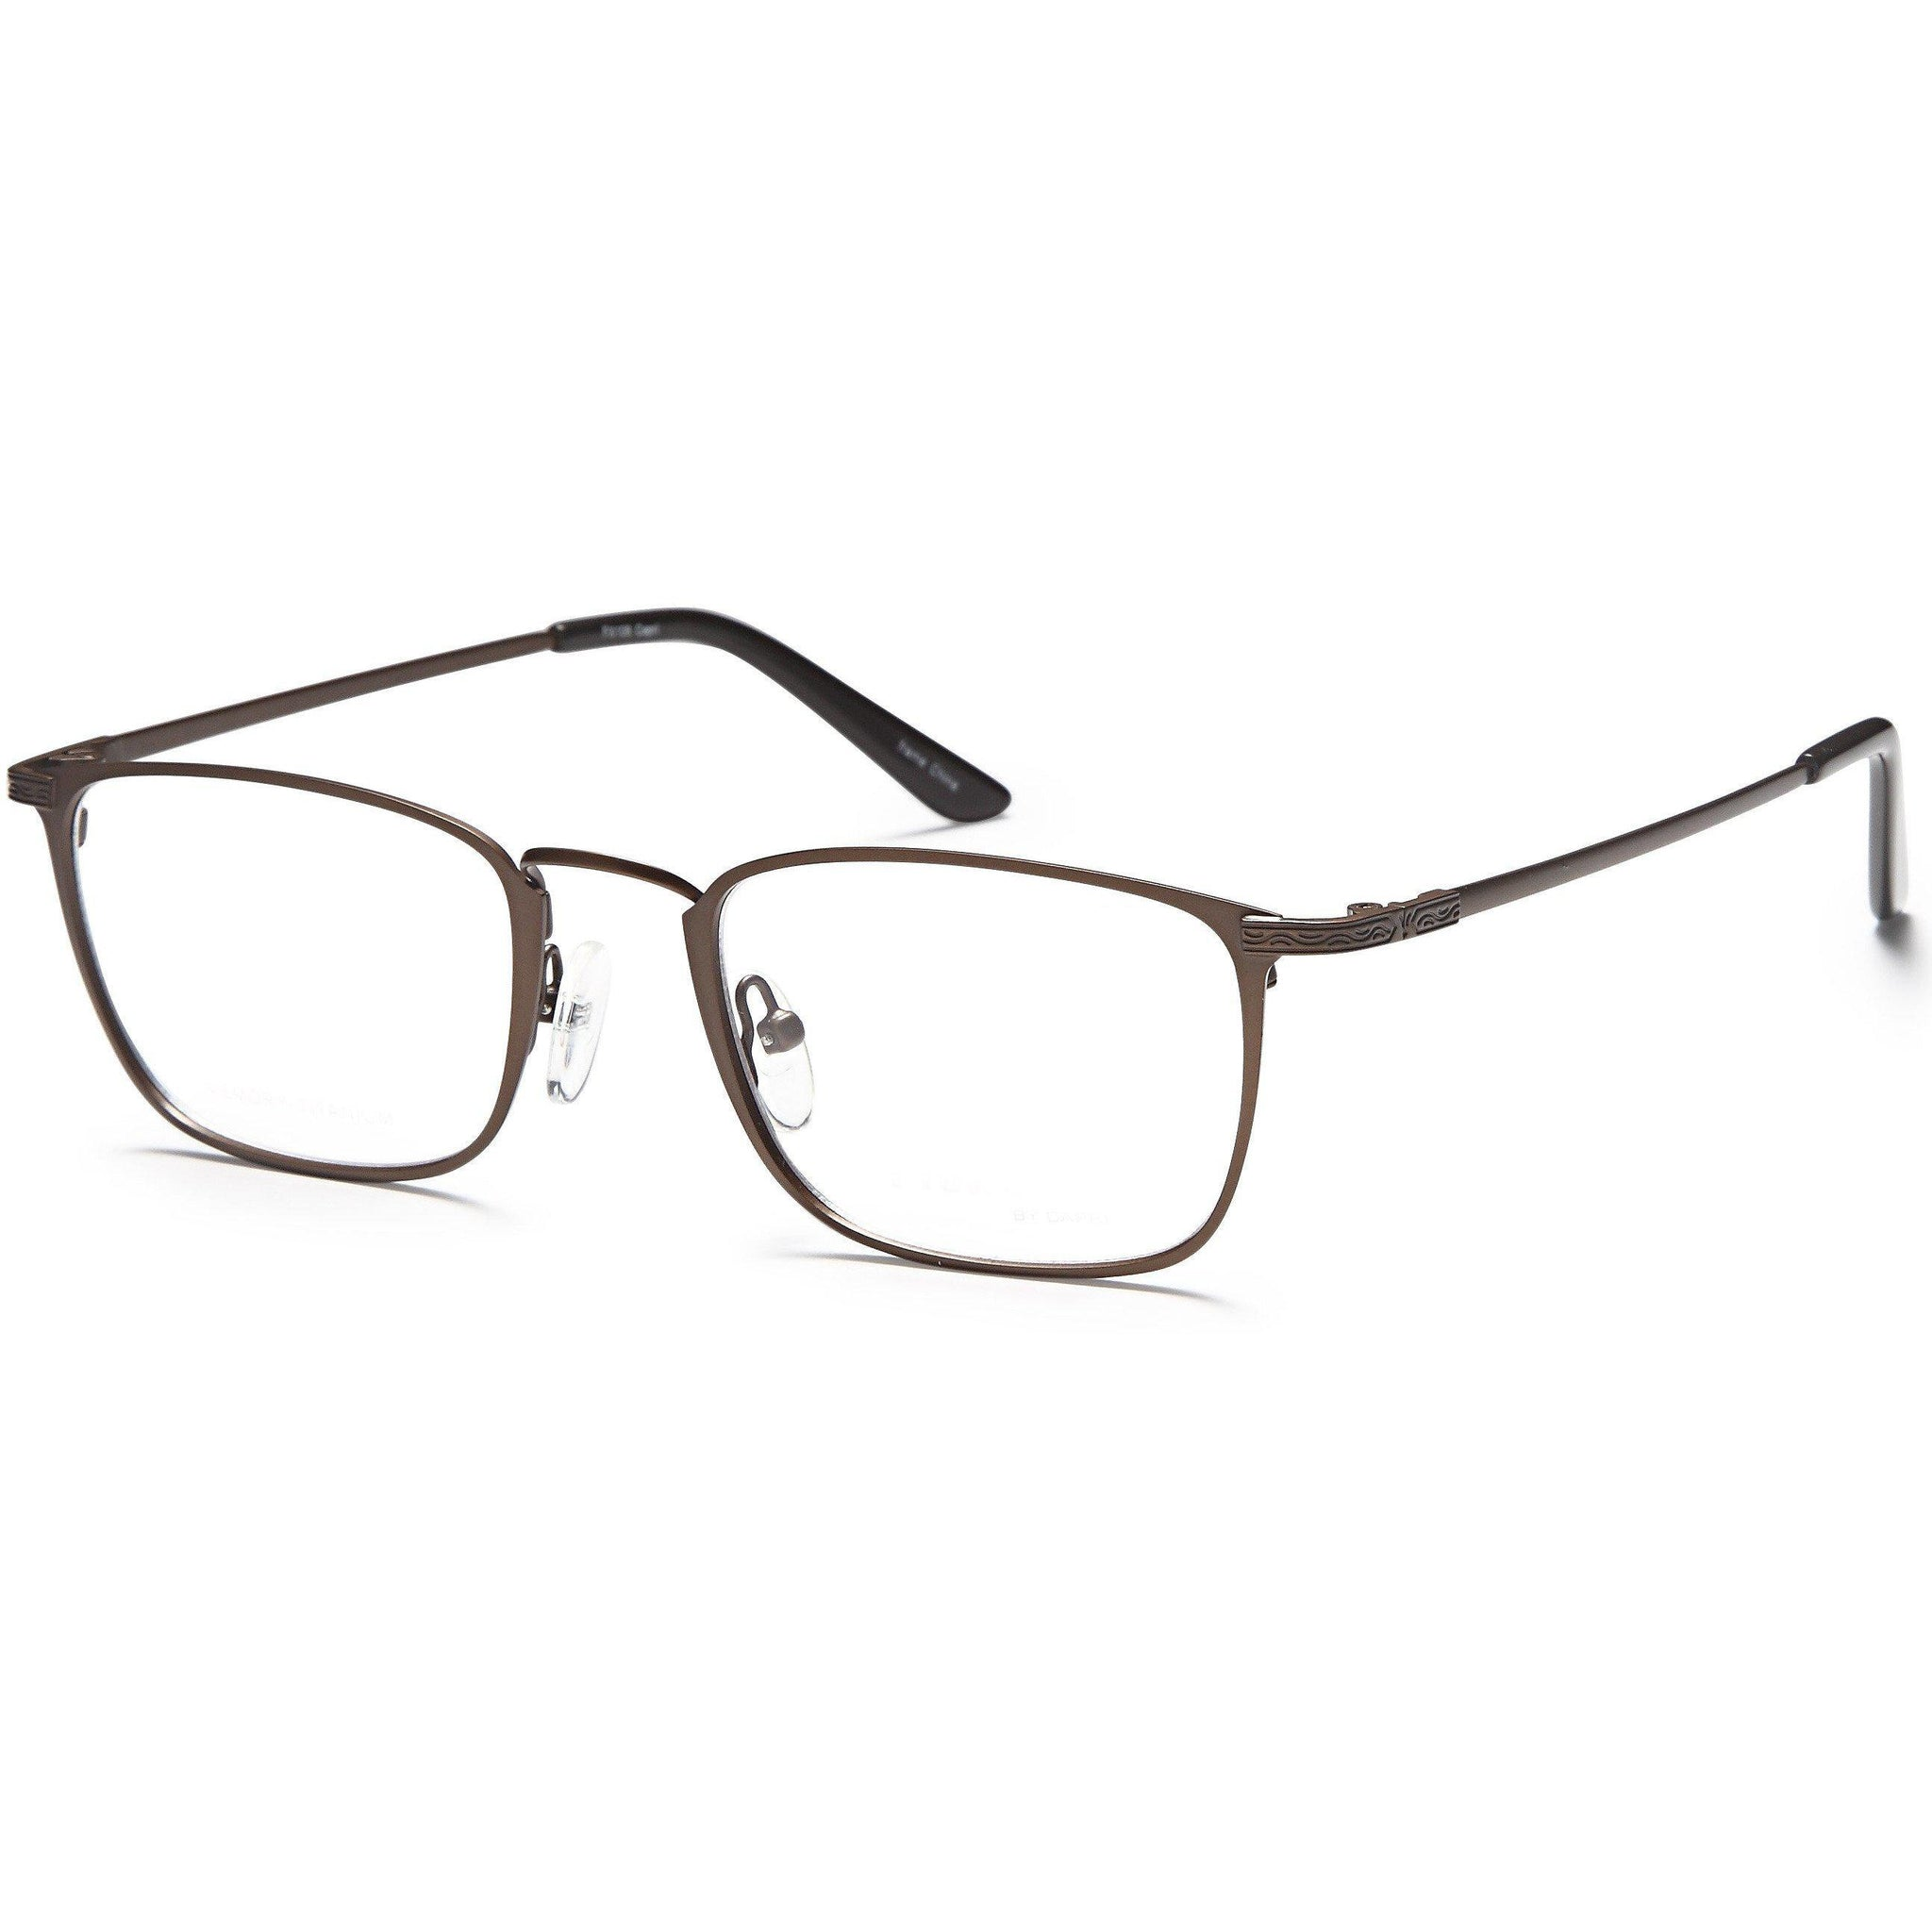 Titanium Prescription Glasses FX 108 Eyeglasses Frame